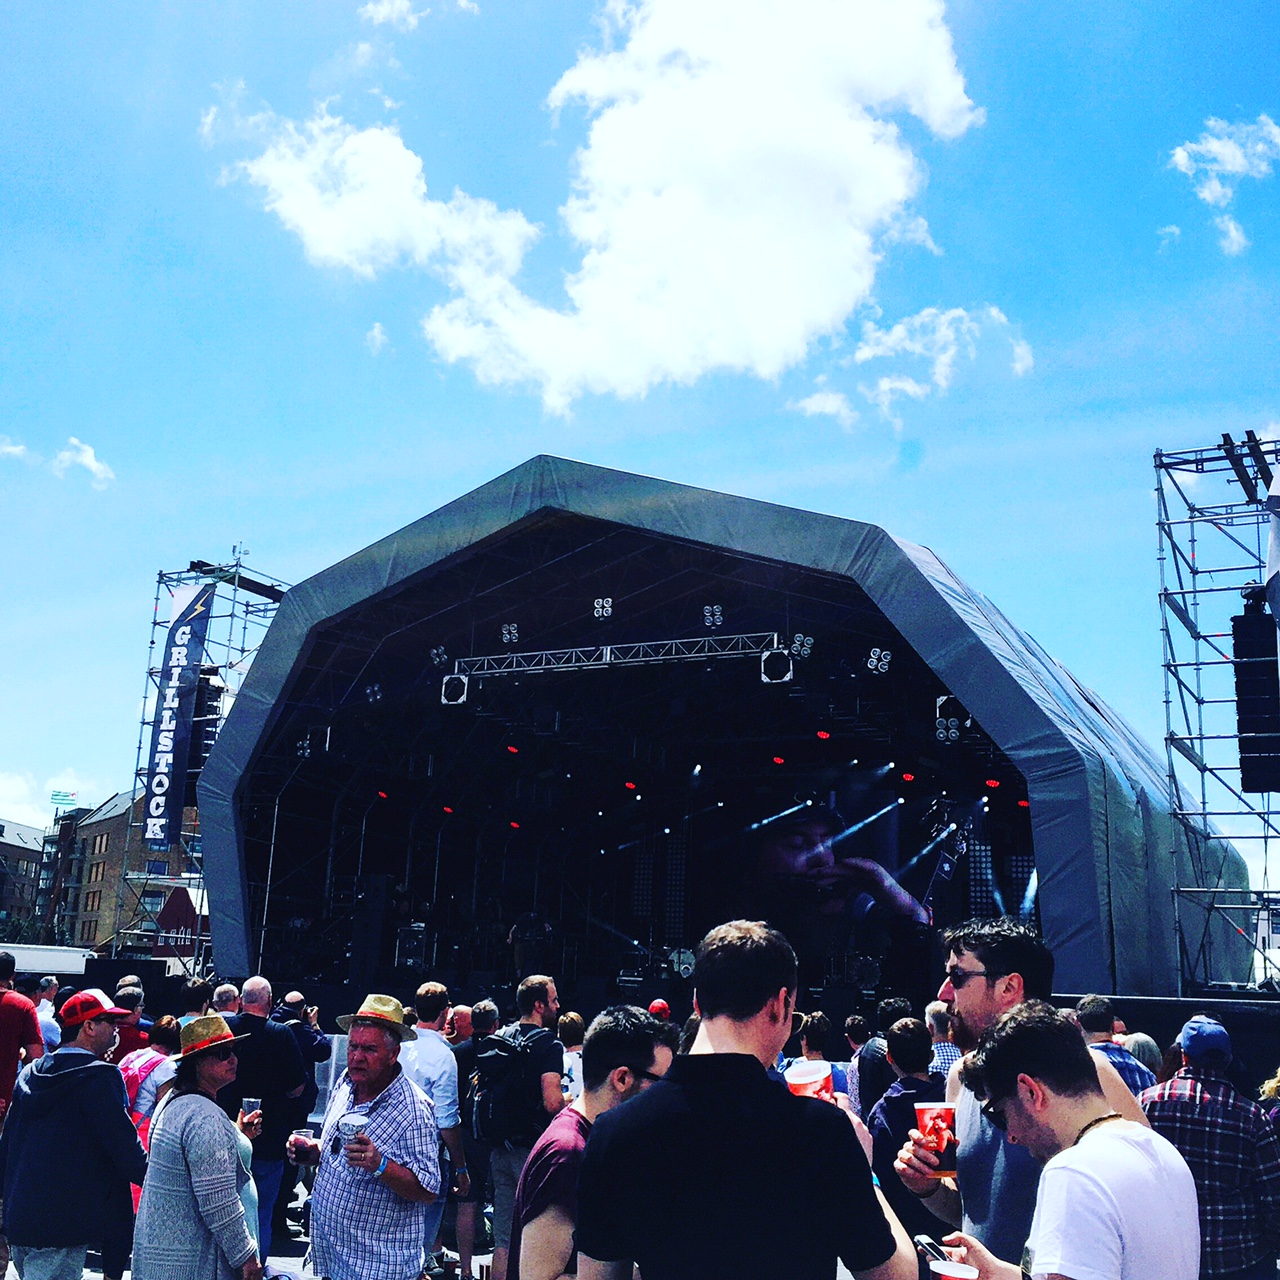 grillstock-stand-instagram-beer-meat-bands-stage-bristol.JPG